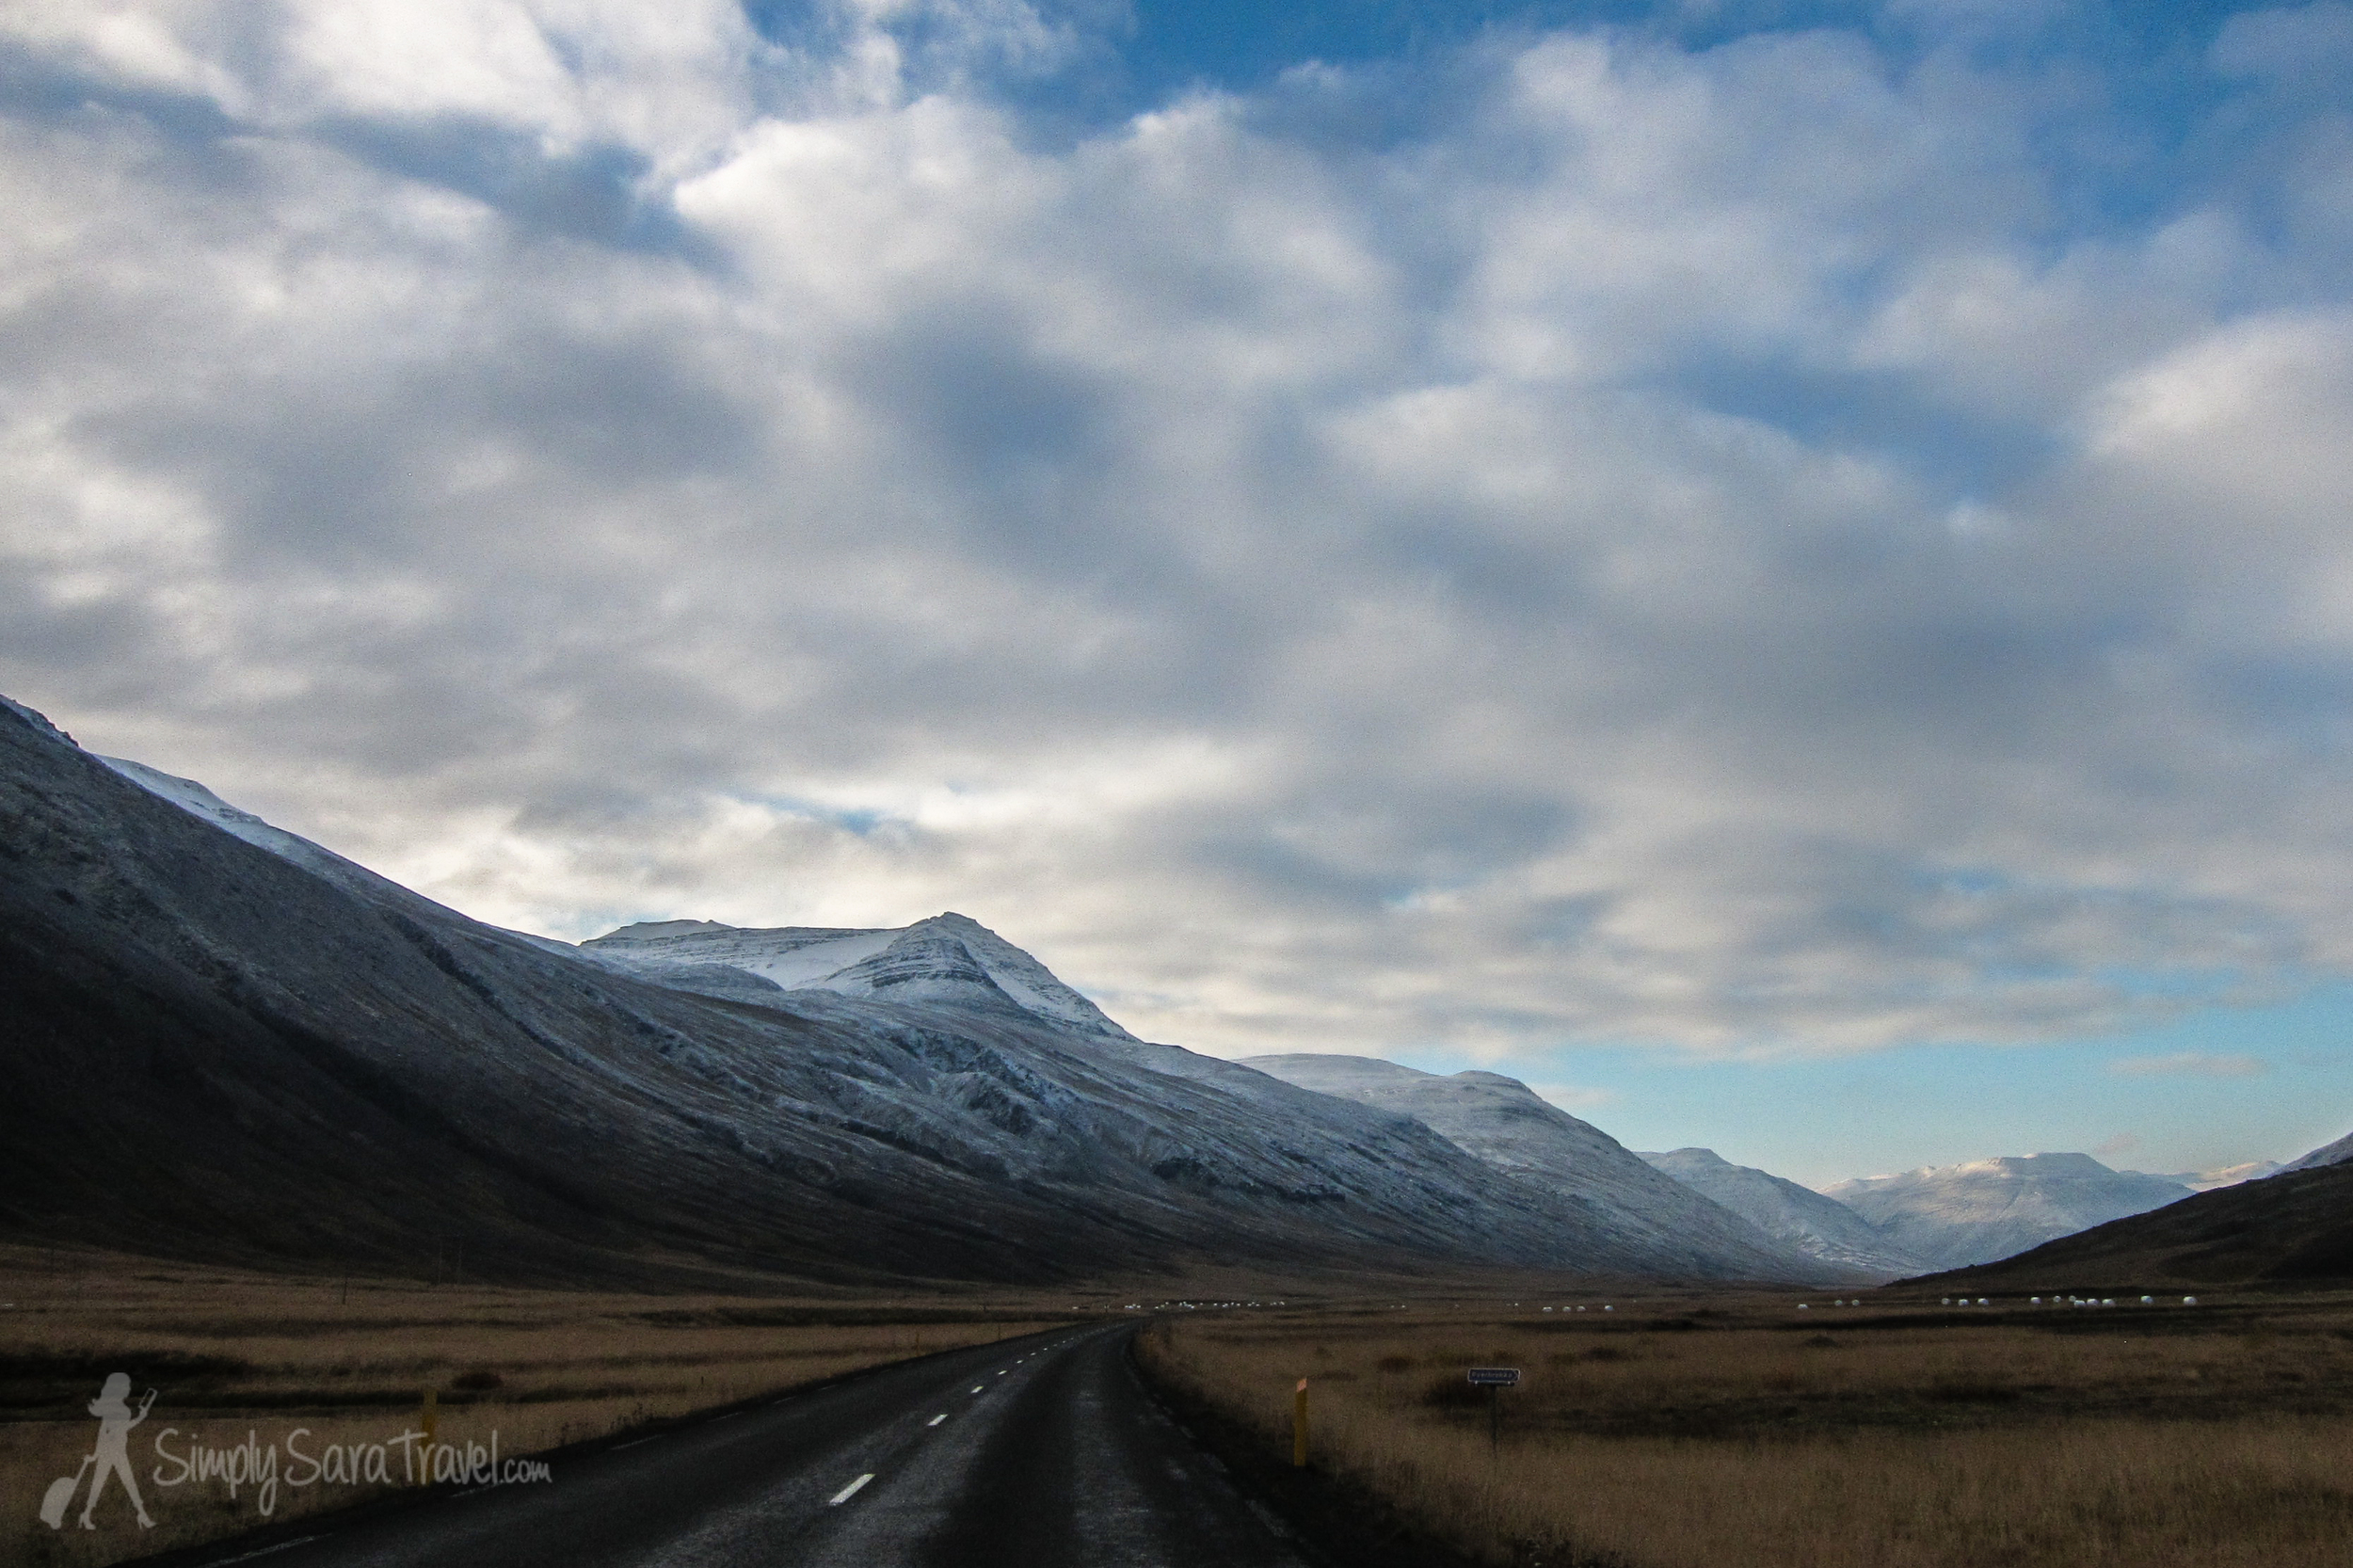 Snow-capped mountains in Iceland